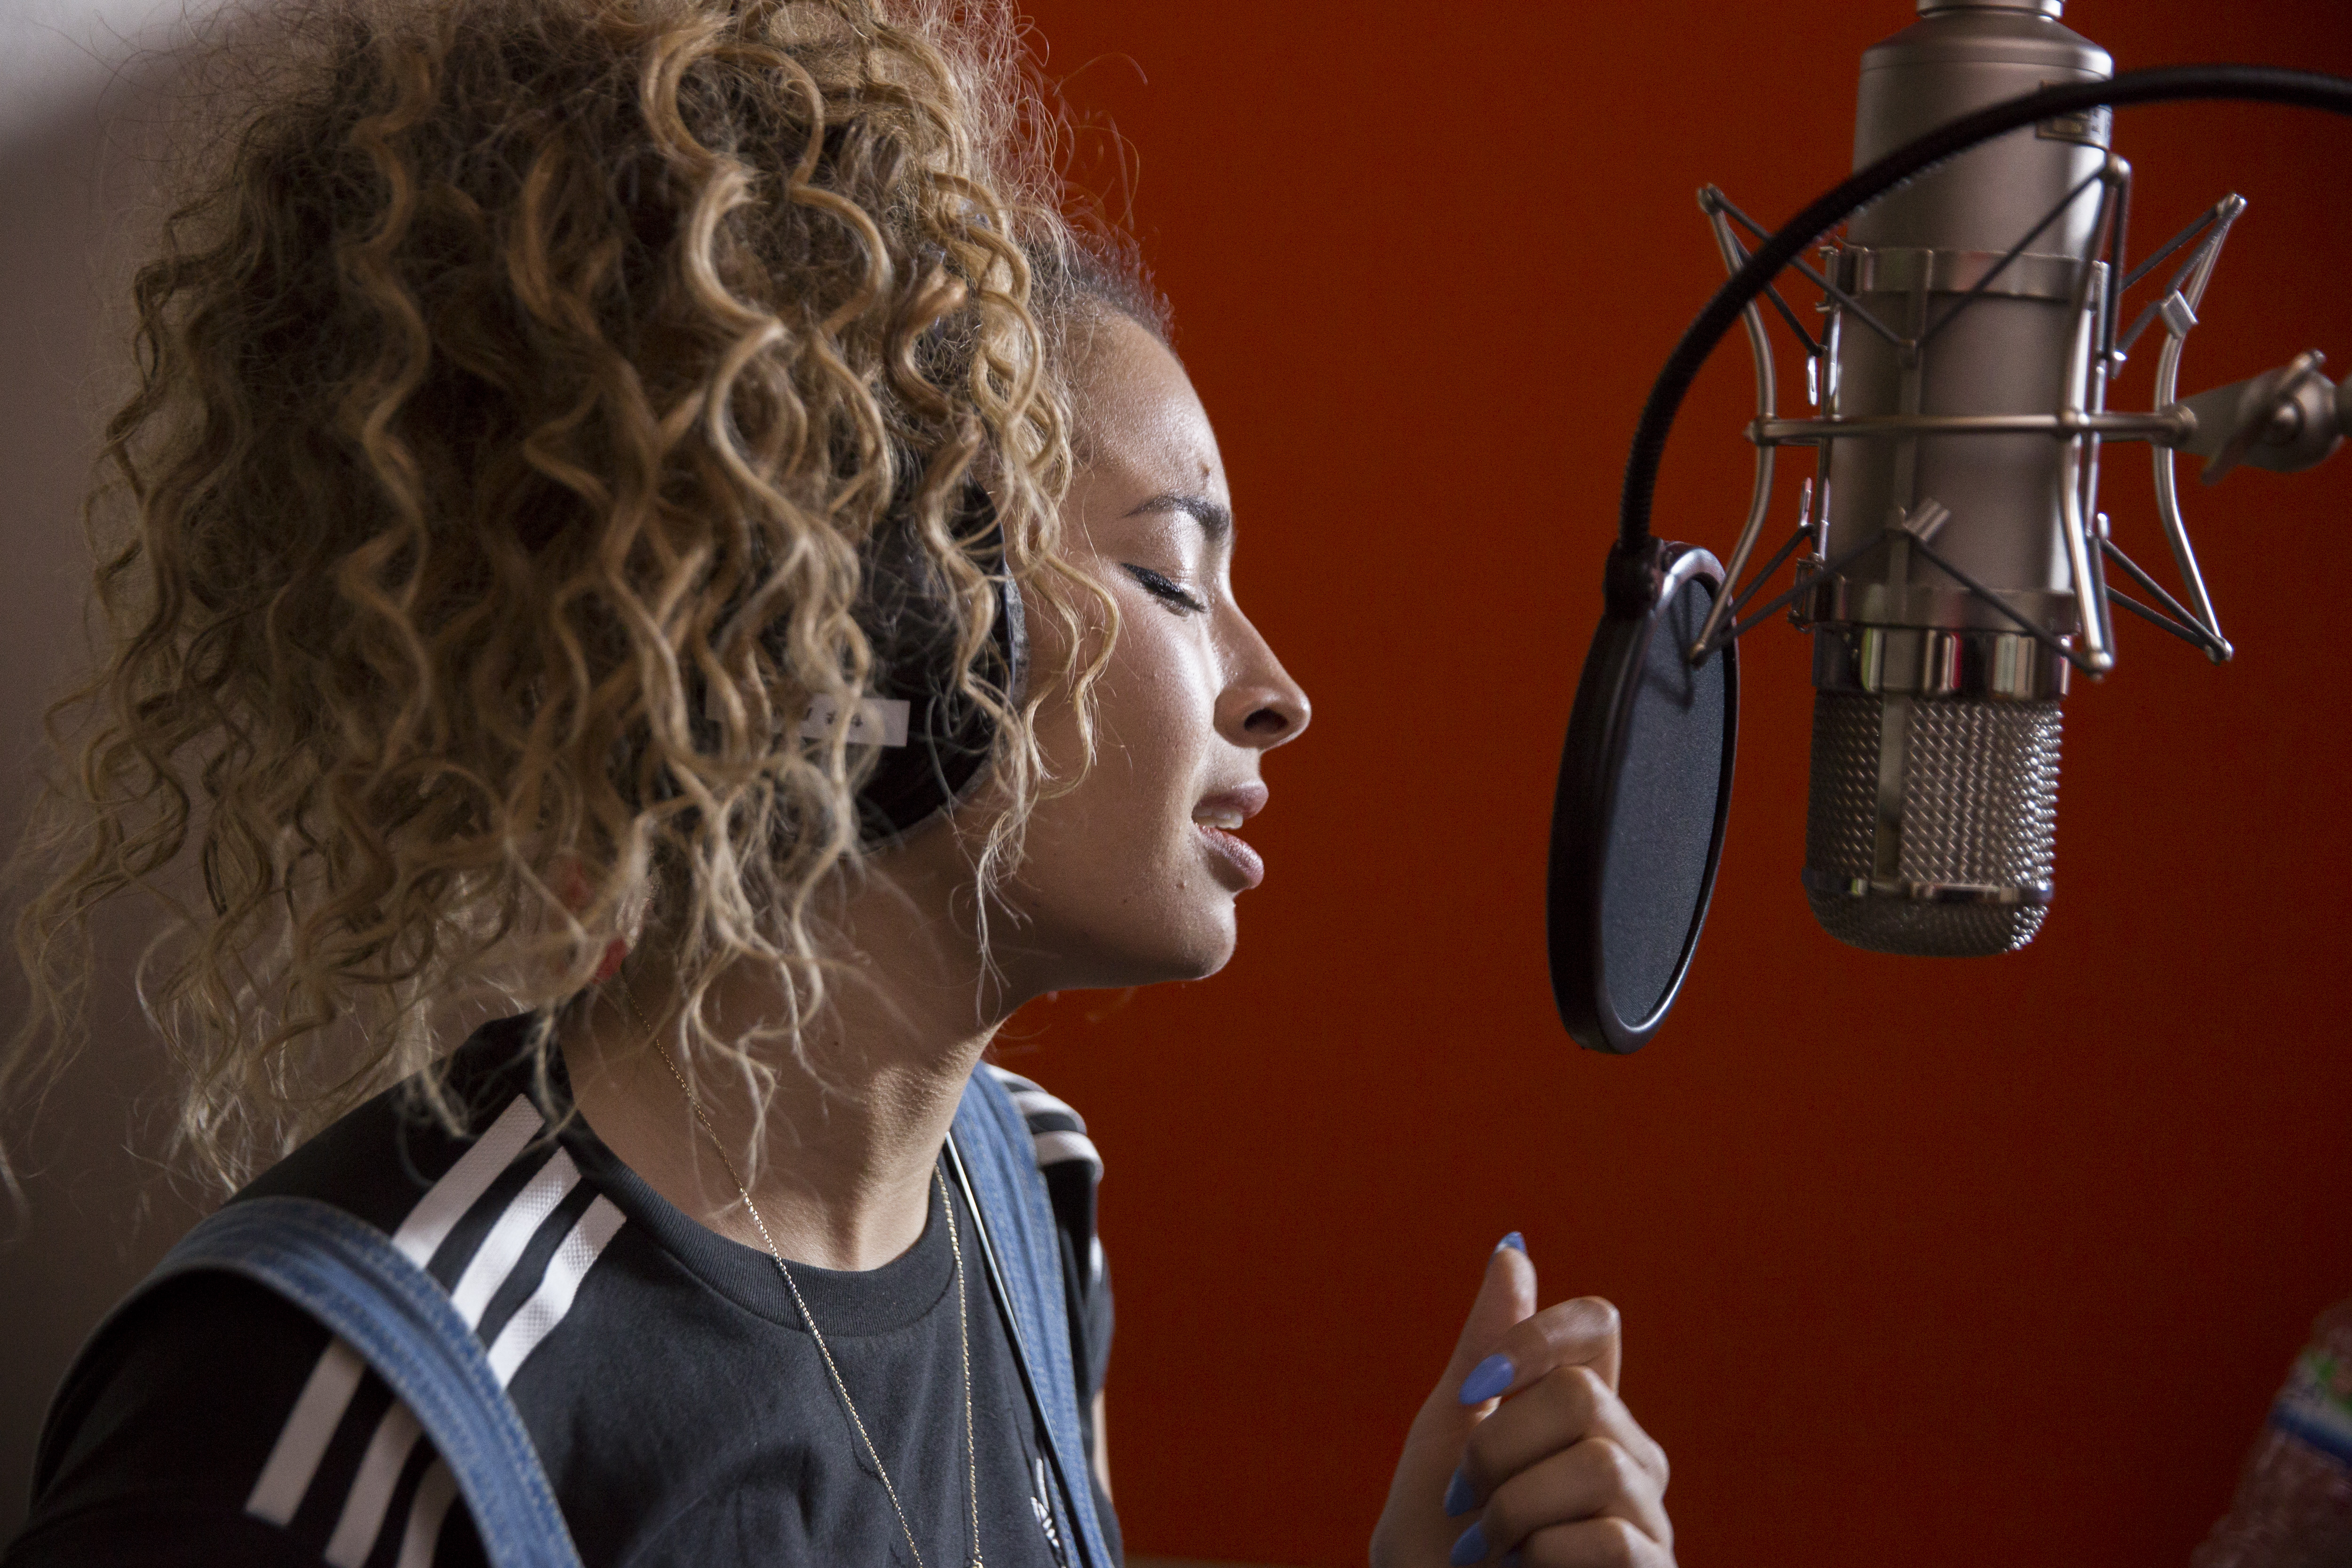 Grenfell Behind the scenes Ella Eyre